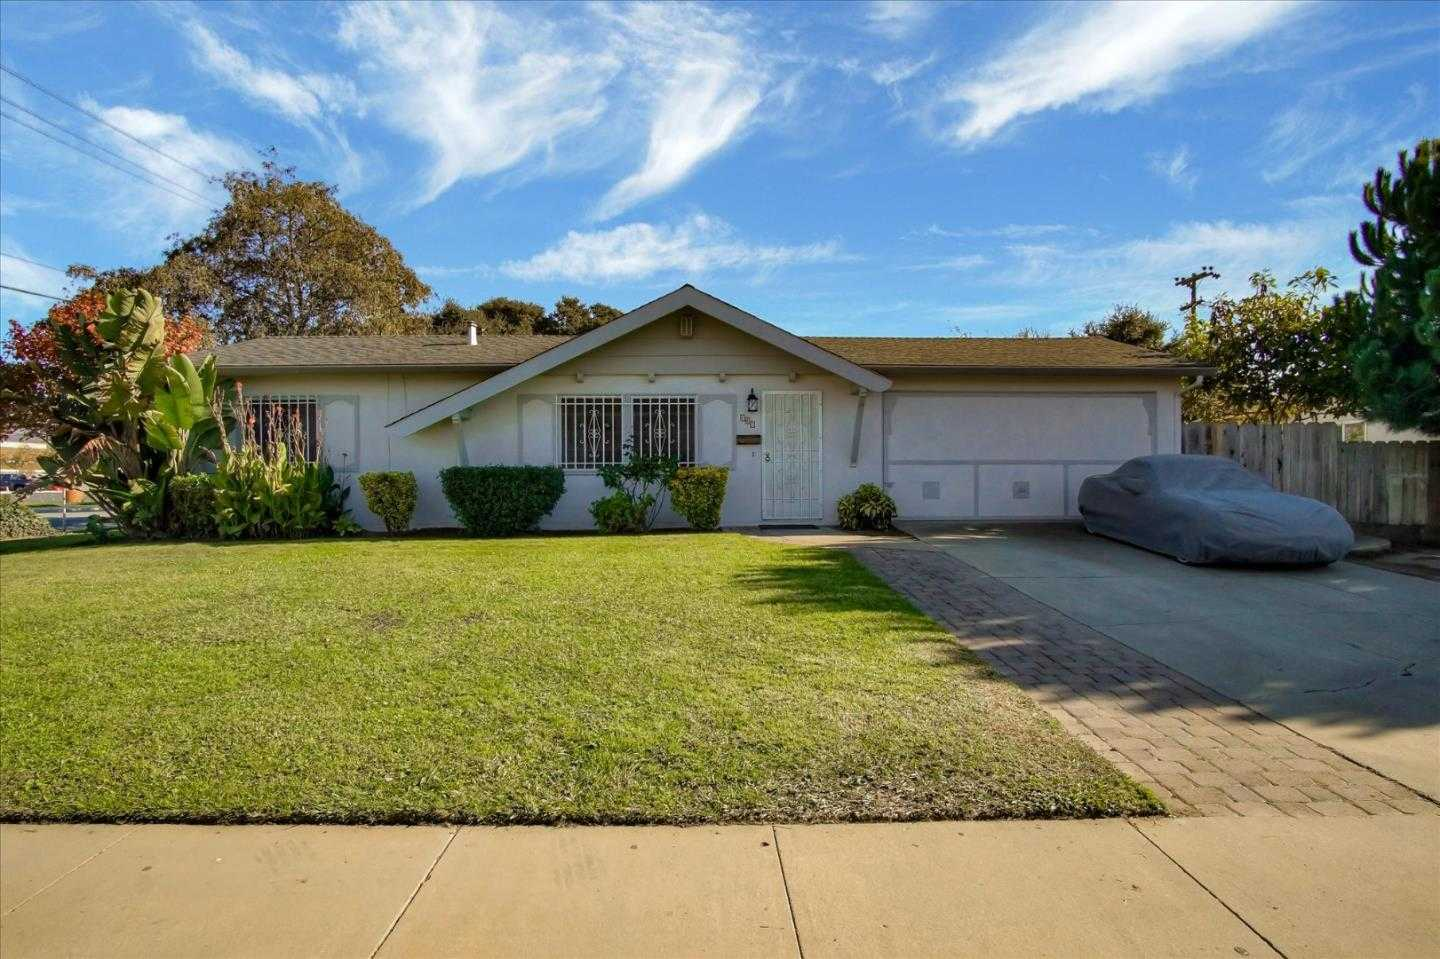 $519,900 - 3Br/2Ba -  for Sale in Salinas